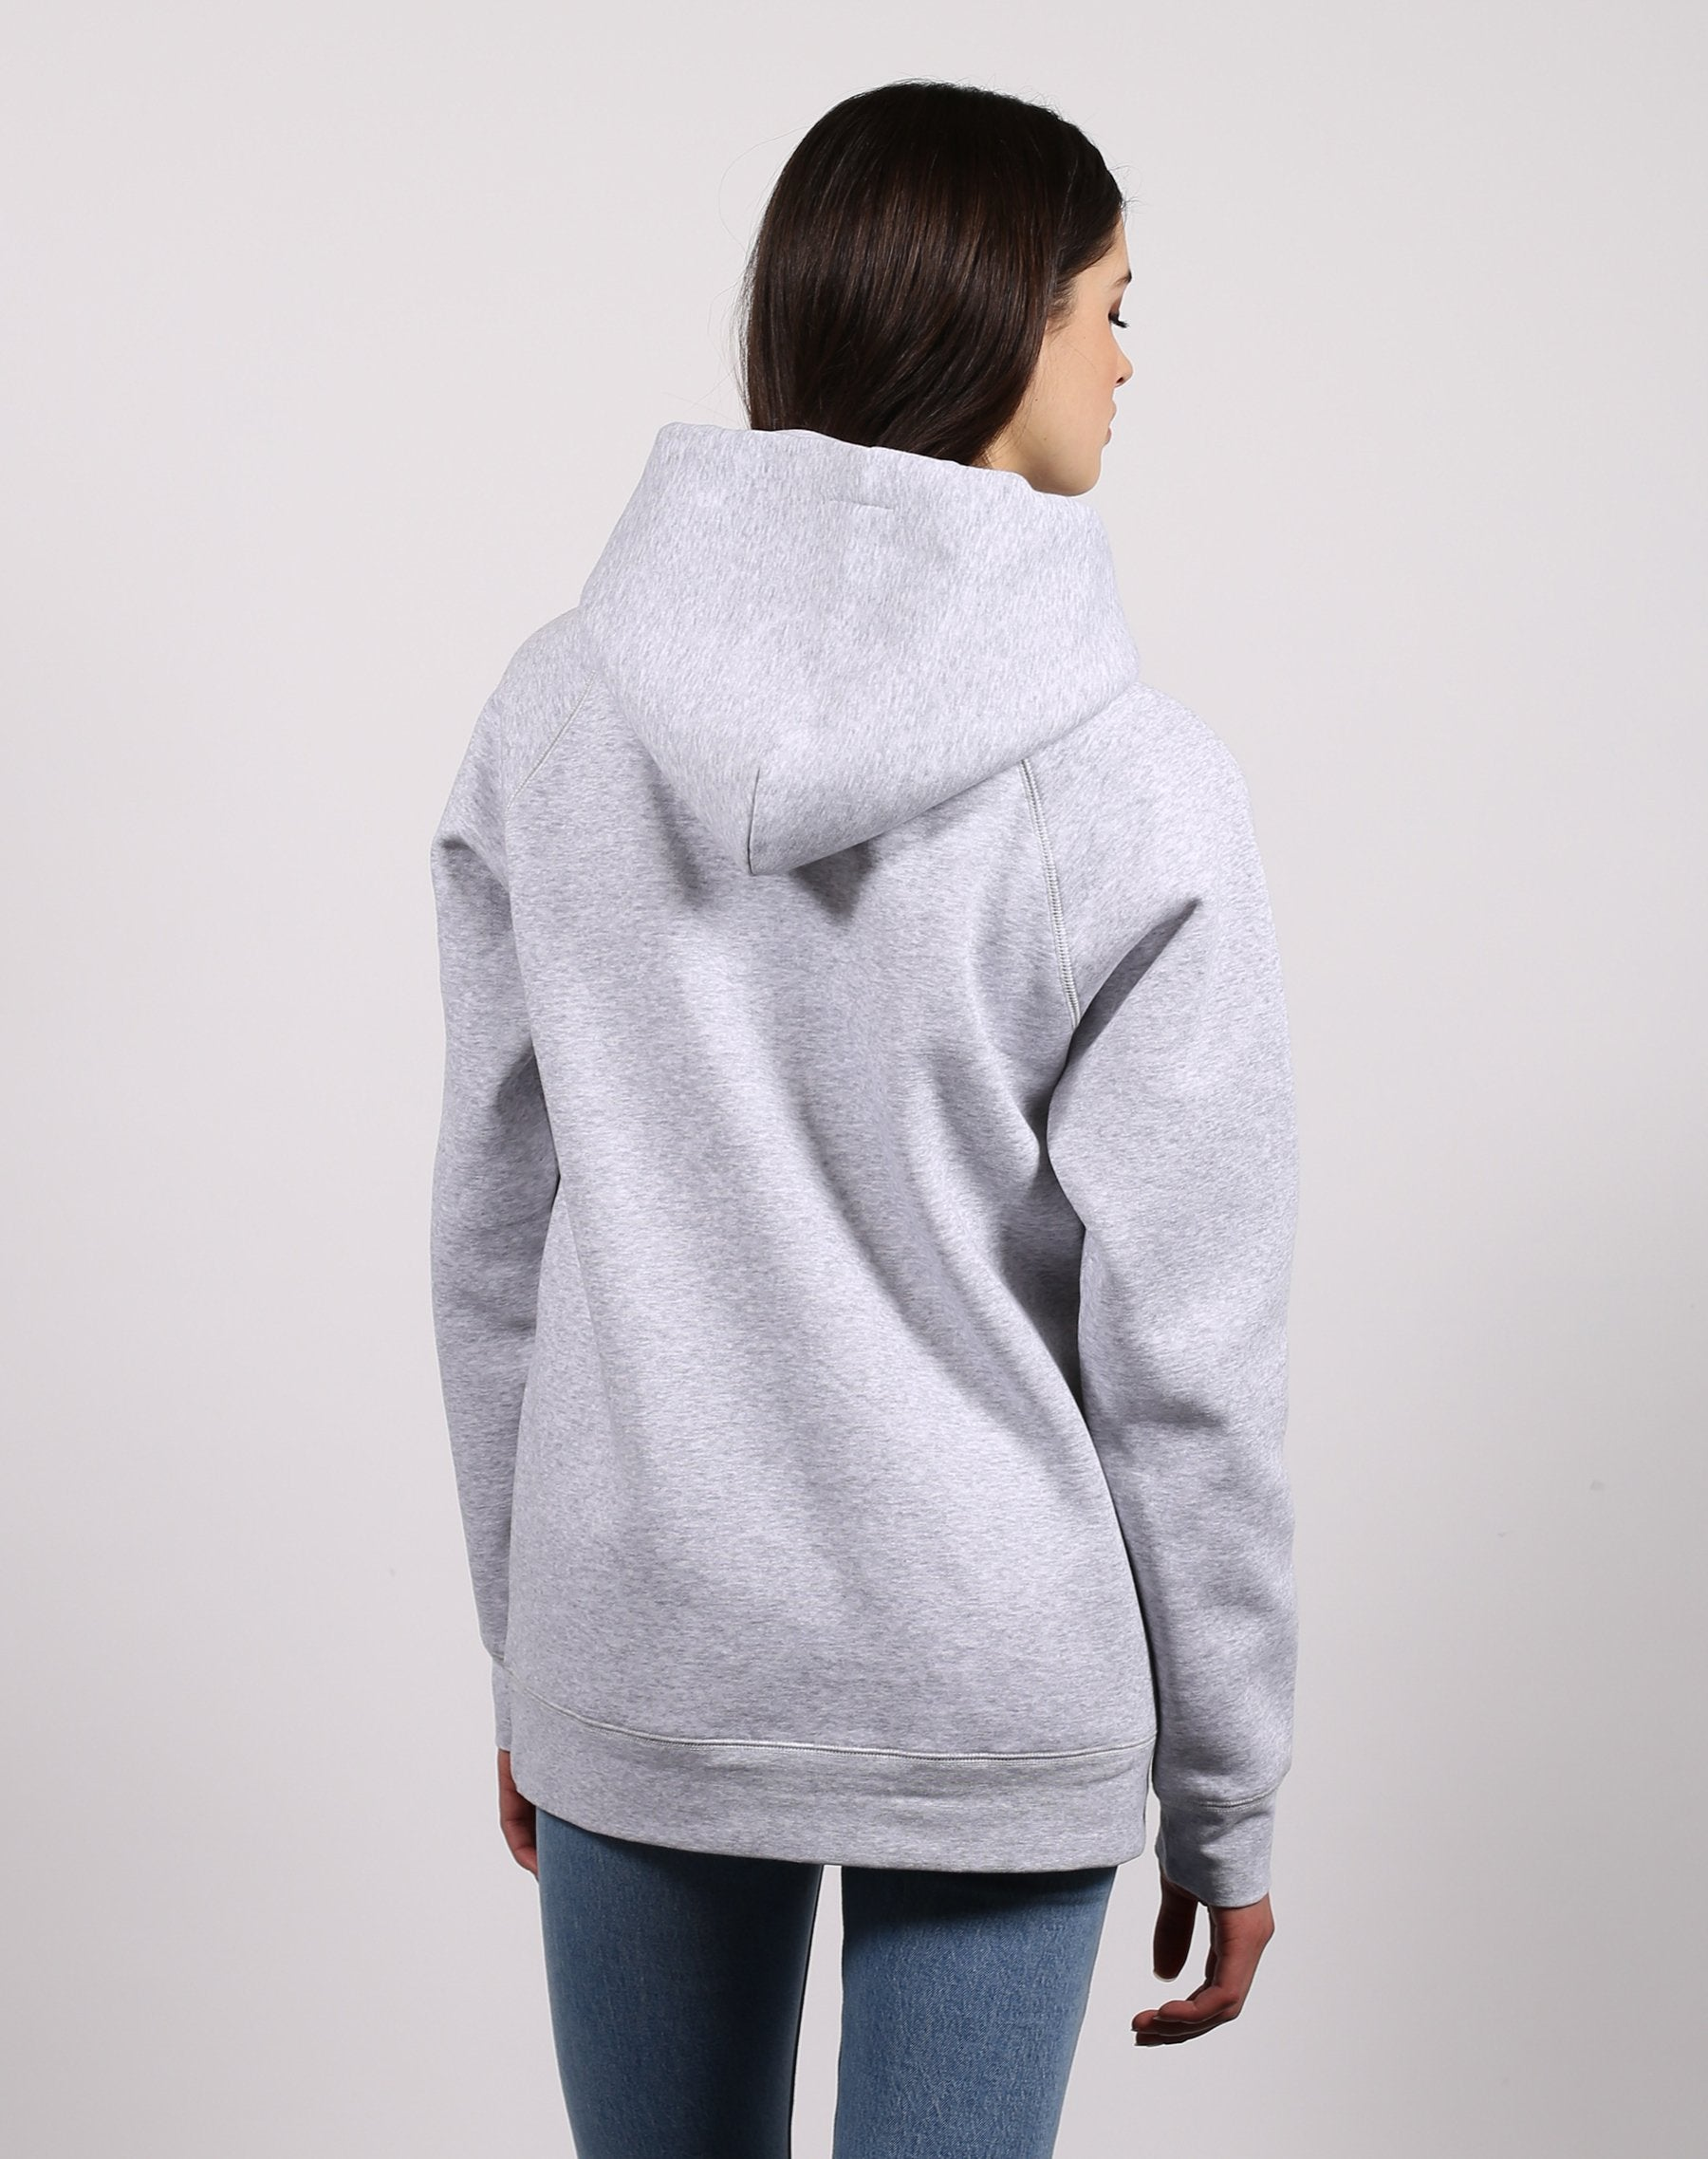 This is a photo of the back of the Blonde classic hoodie in pebble grey by Brunette the Label